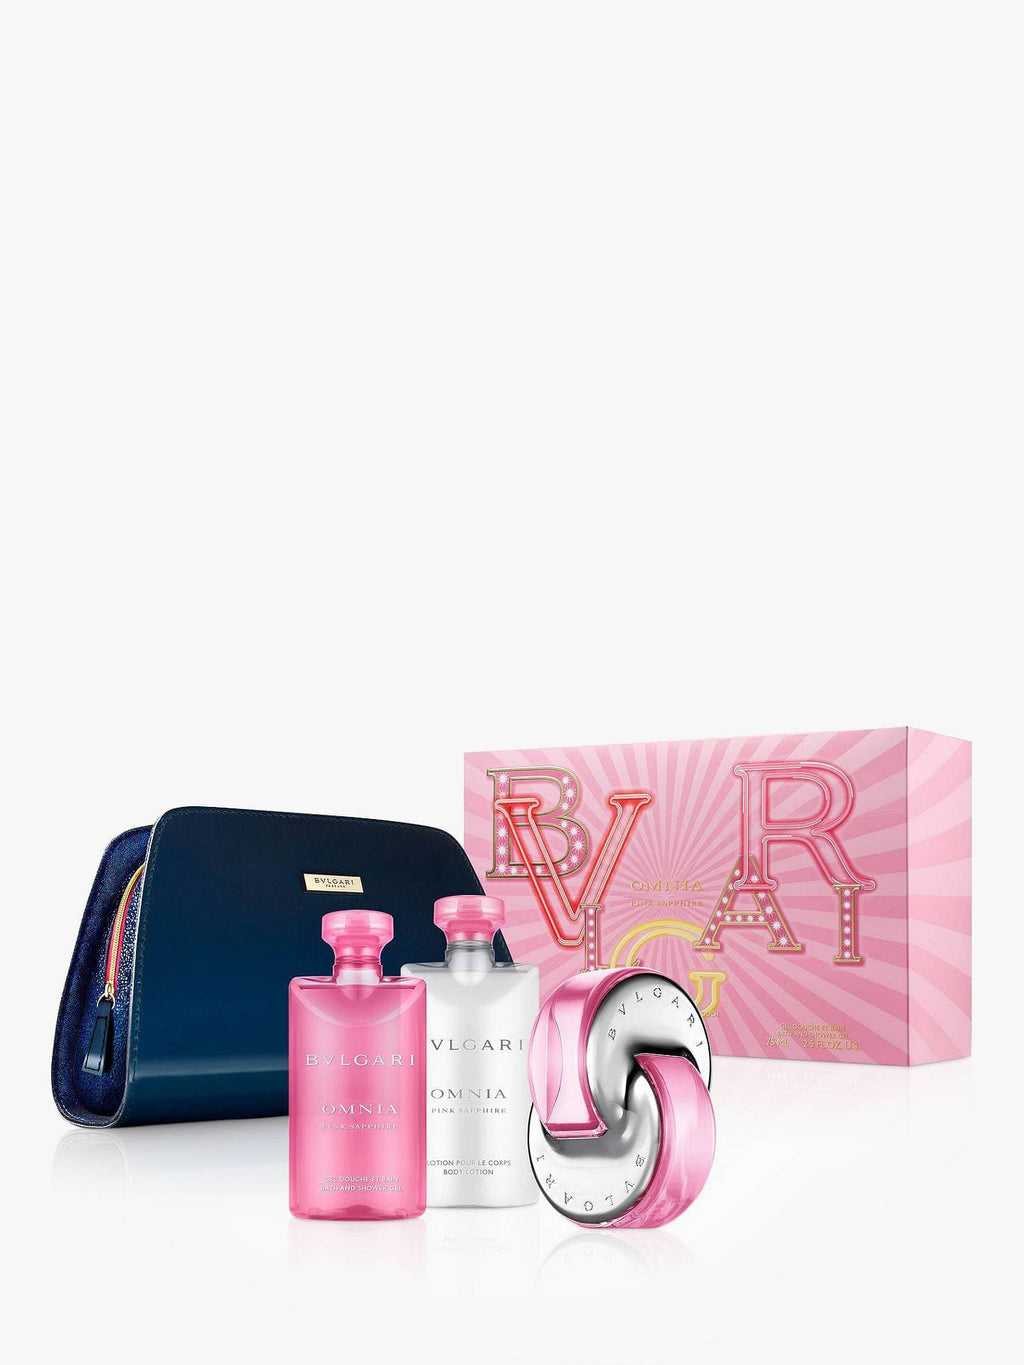 Bvlgari Omnia Pink 65ml EDT + Body Lotion + Shower Gel + Beauty Pouch